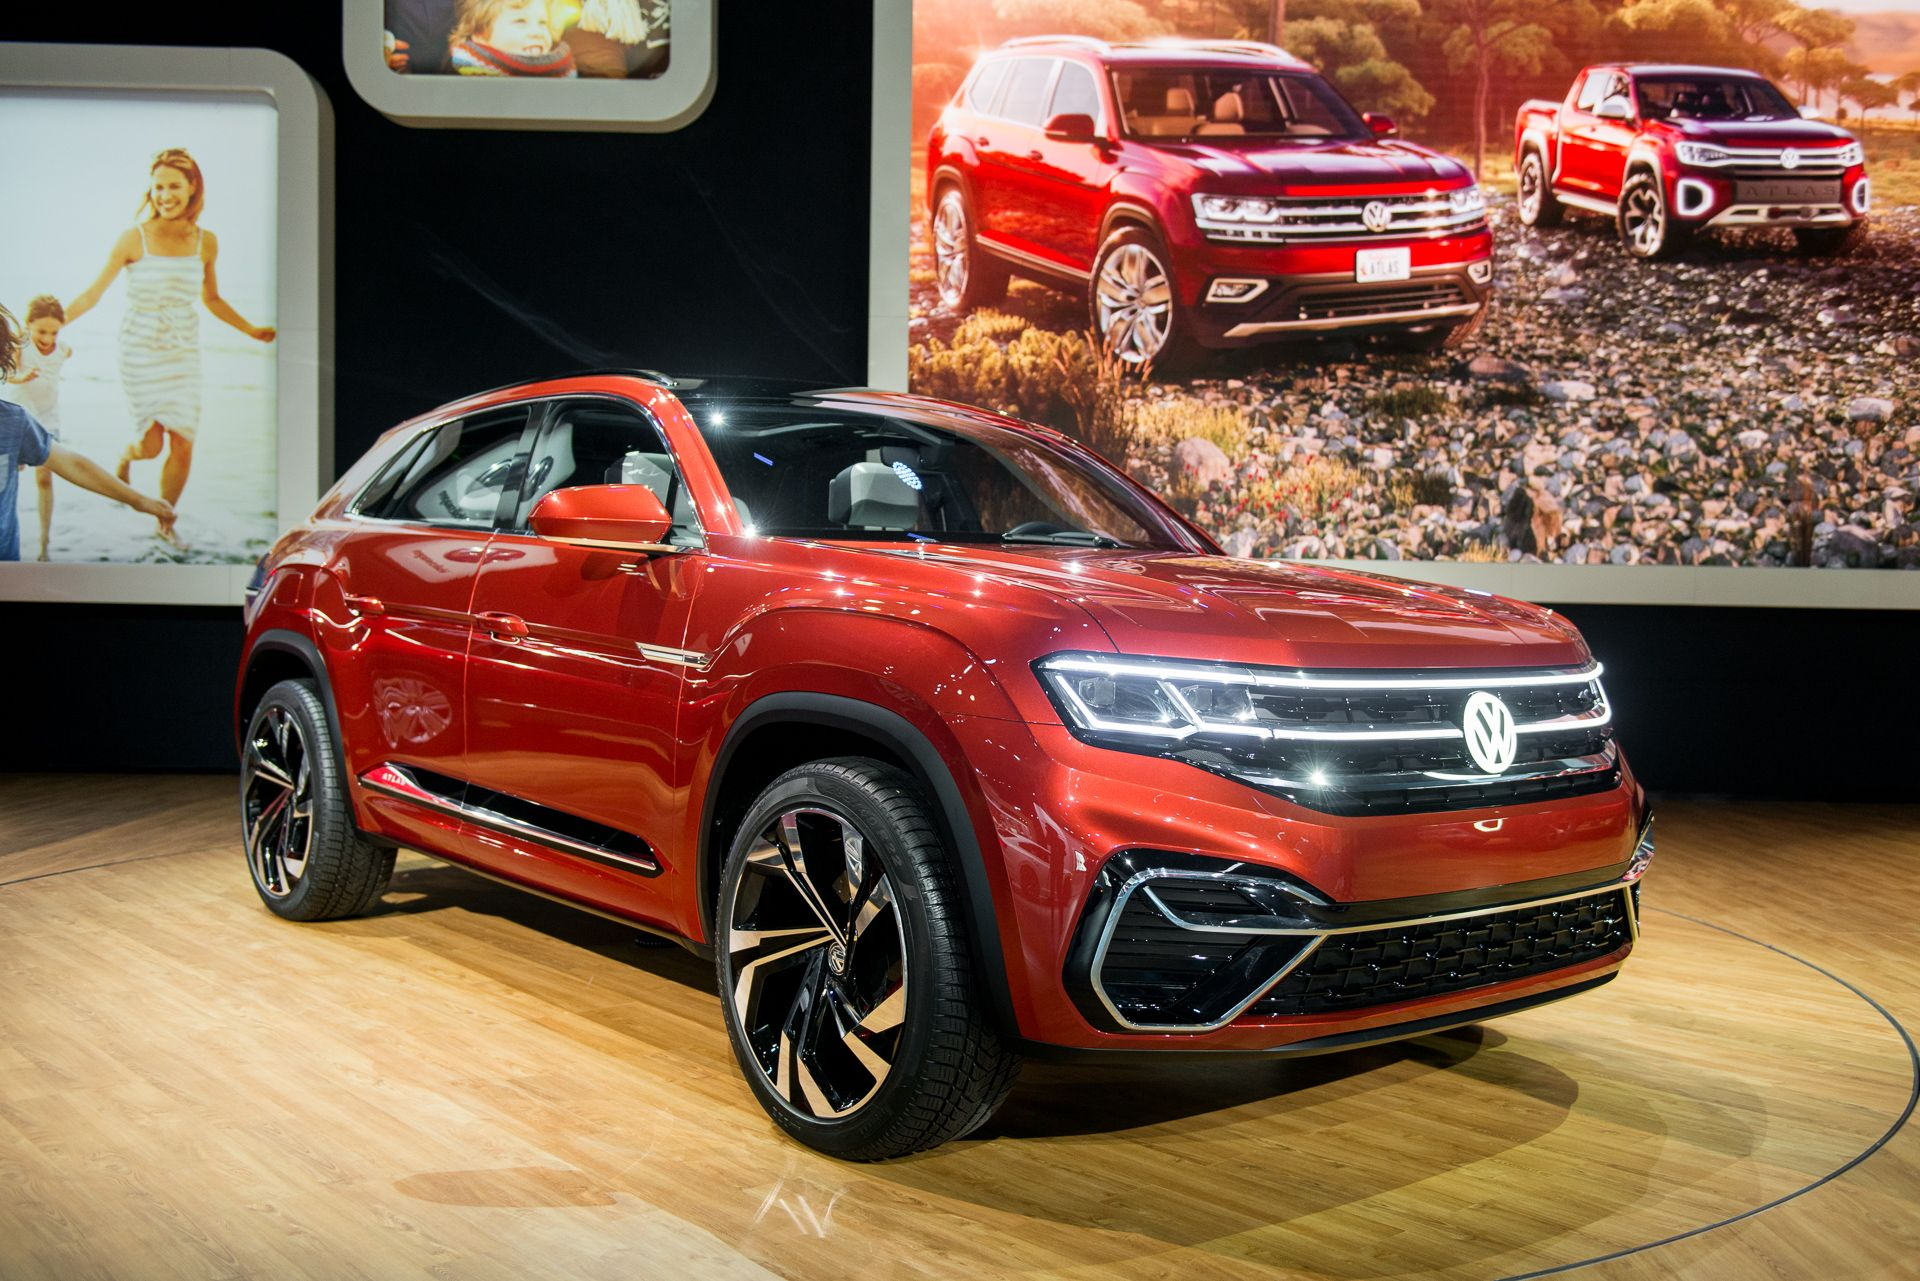 2020 VW Atlas Cross Sport Volkswagen's SUV family affair